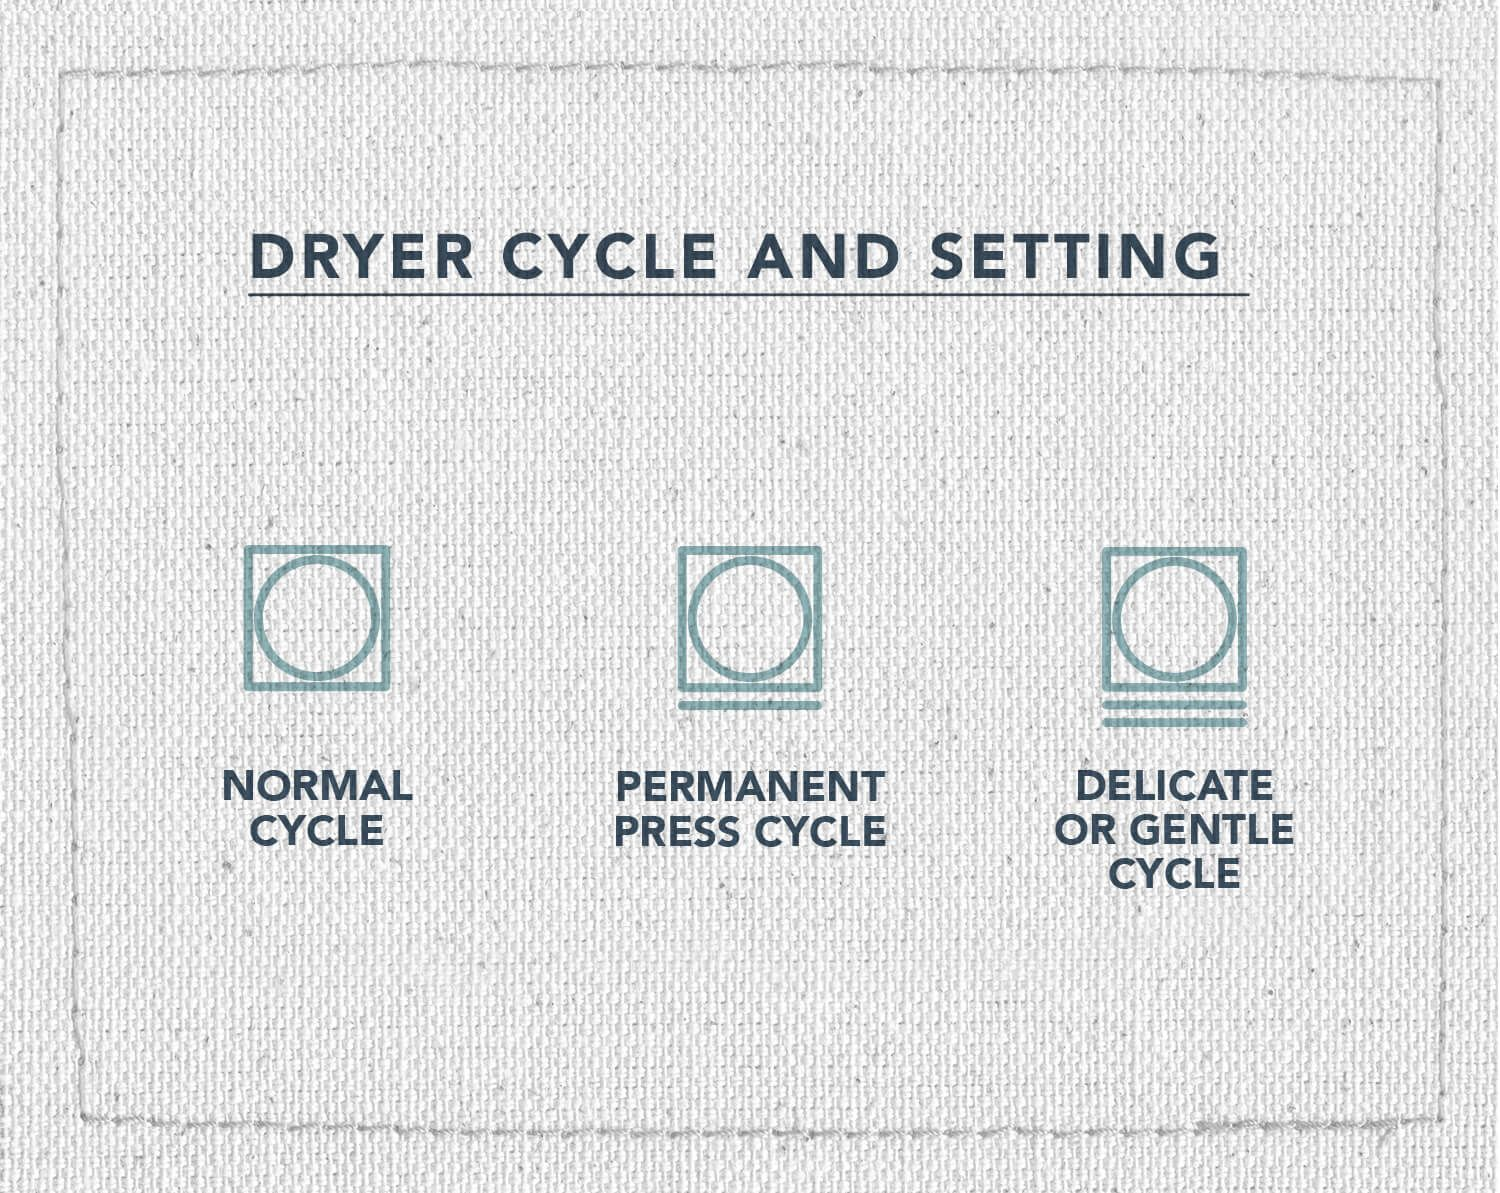 An infographic of three laundry care symbols depicting which symbols mean to run a normal cycle, permanent press cycle, or a delicate or gentle cycle